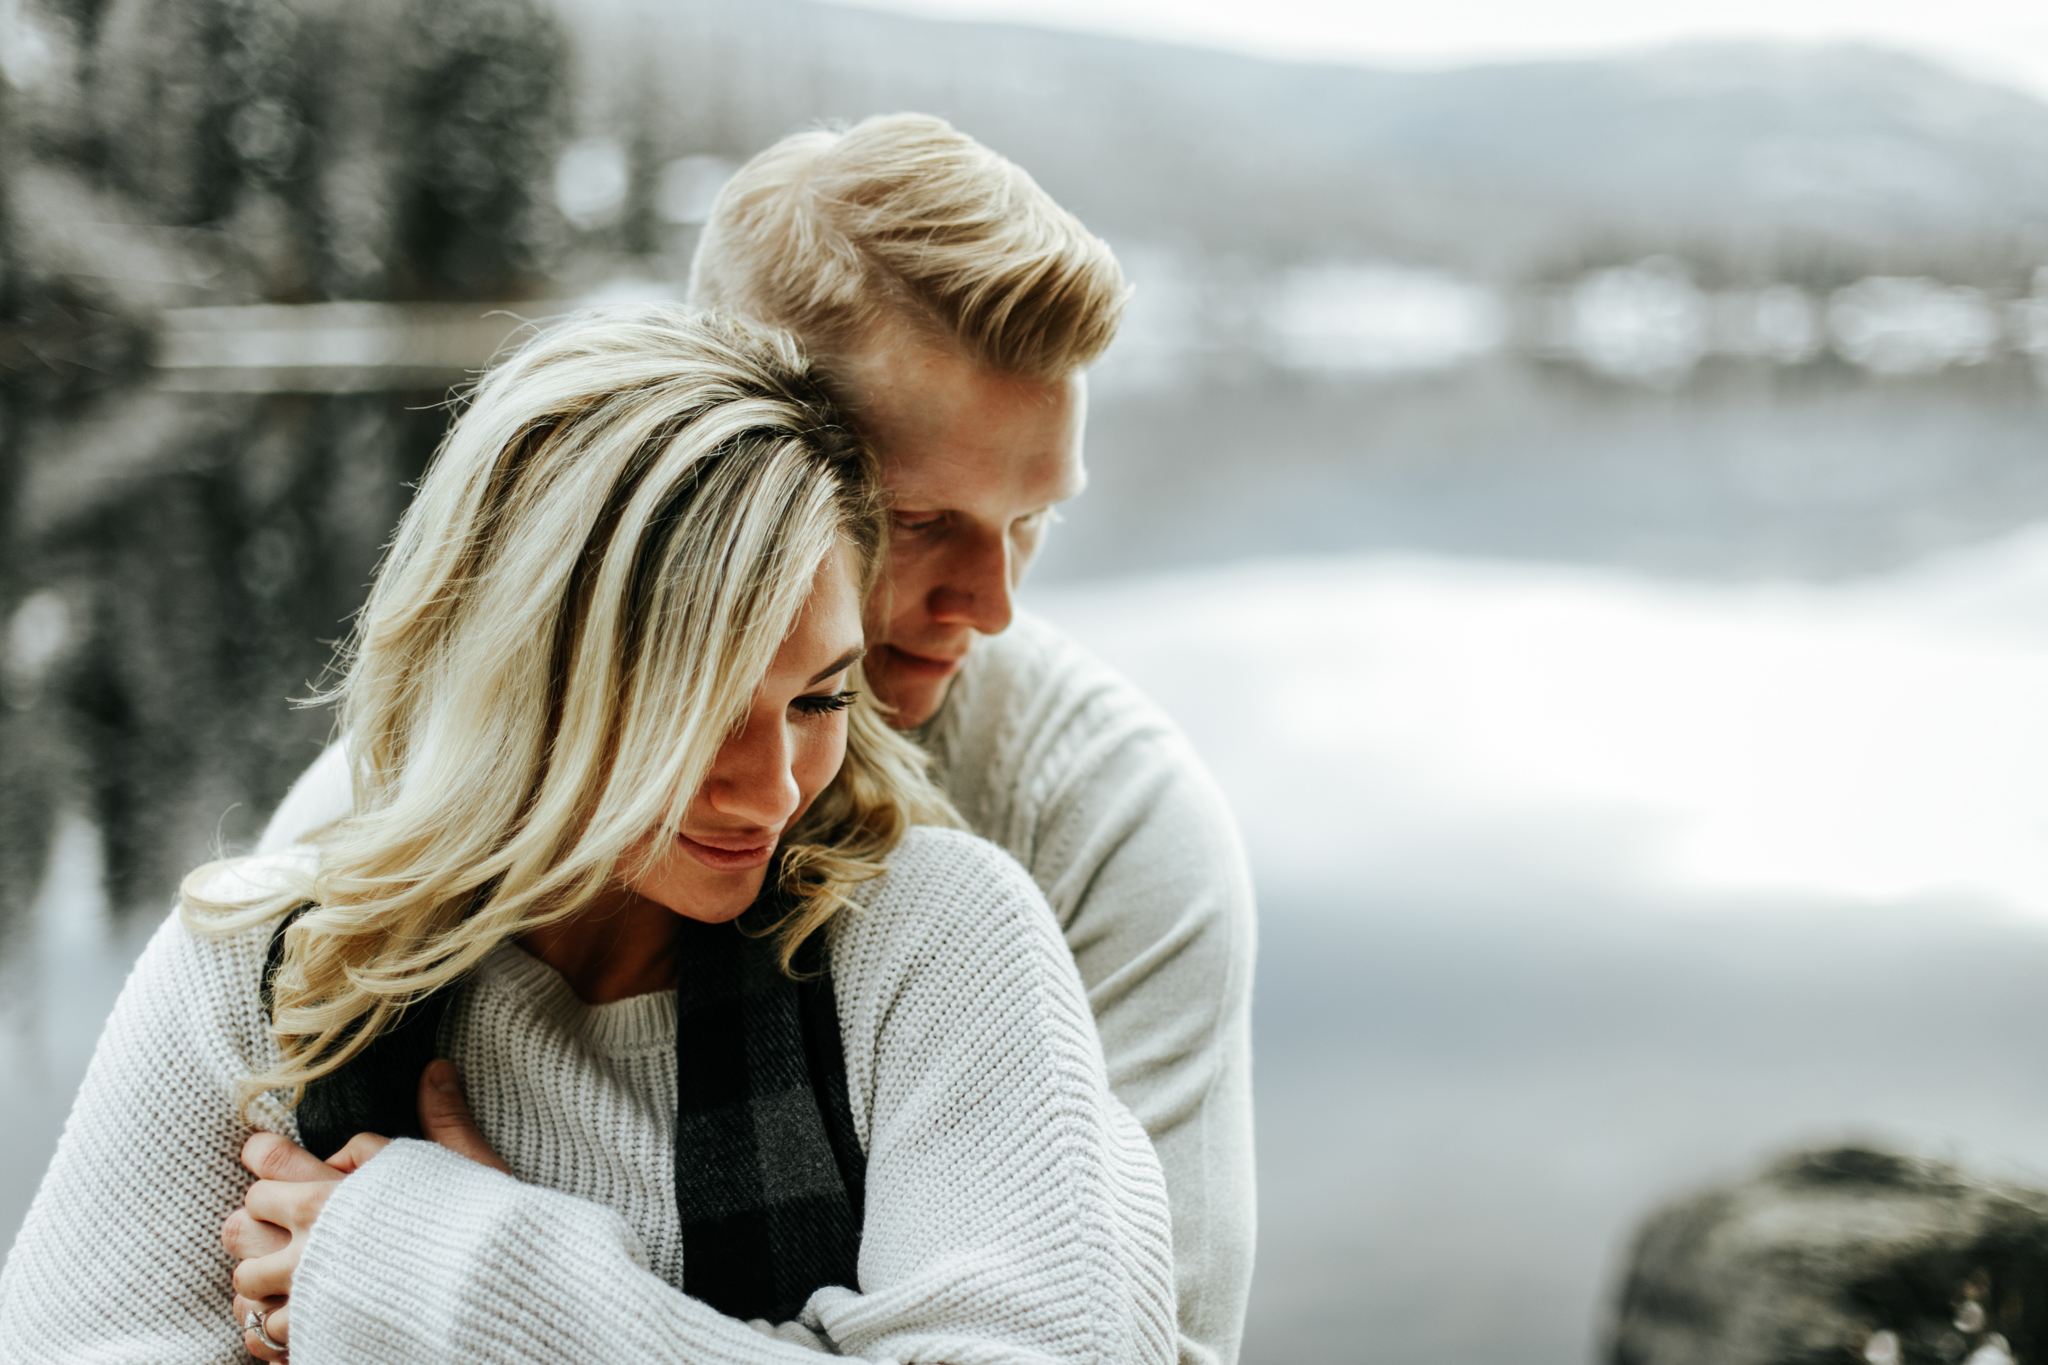 love-and-be-loved-photography-mountain-engagement-ashlyn-rob-perfect-fit-4-u-photo-image-picture-32.jpg